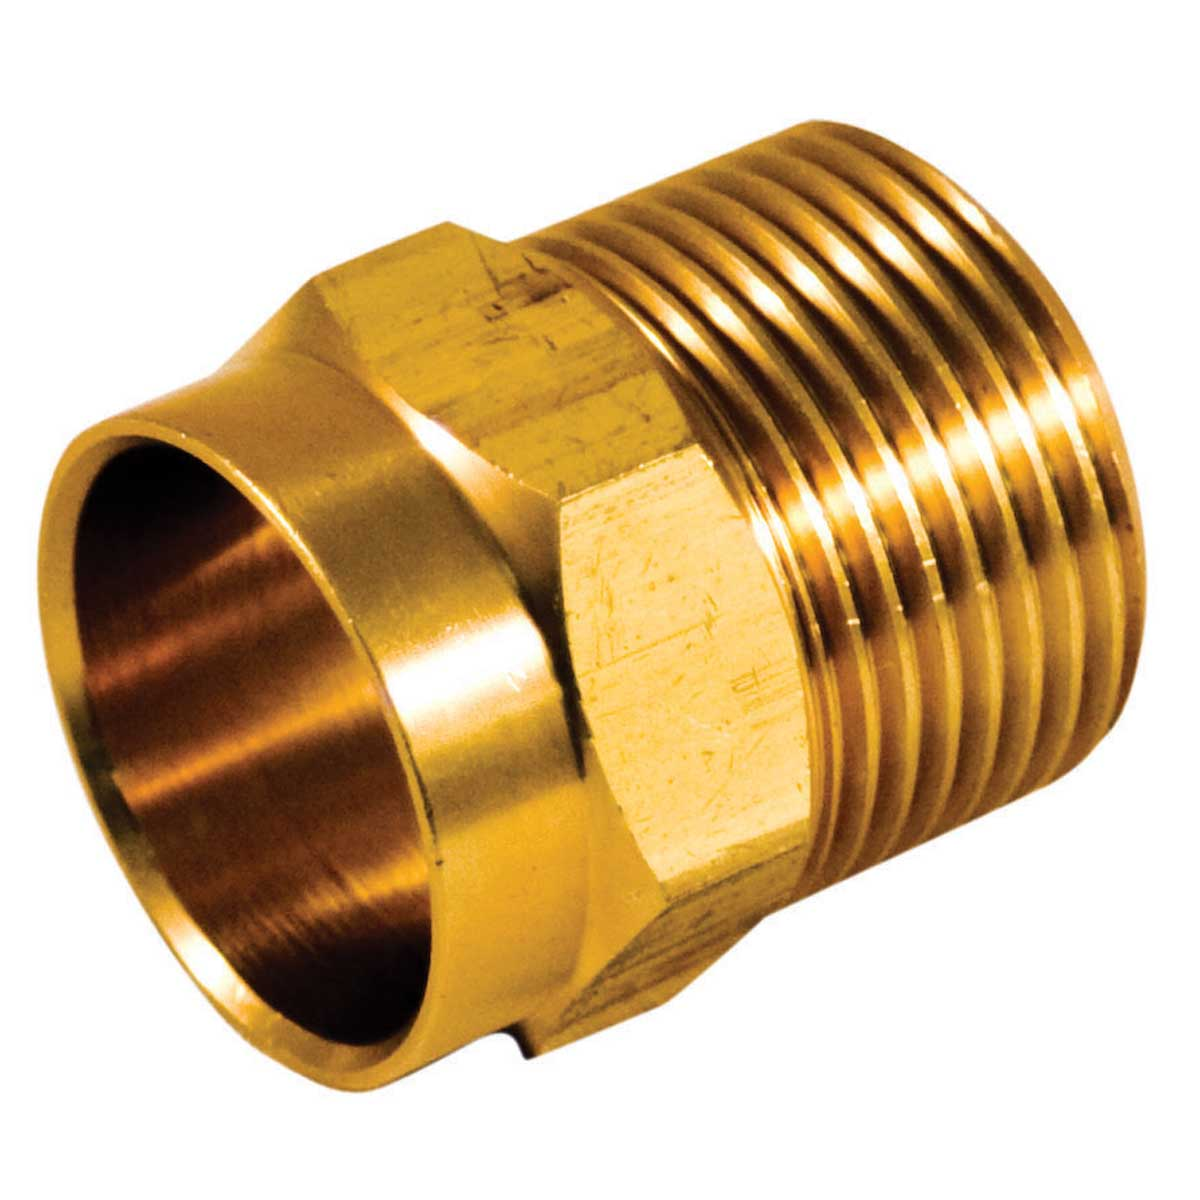 Bar Stock Male Adapter  - 3/4-in